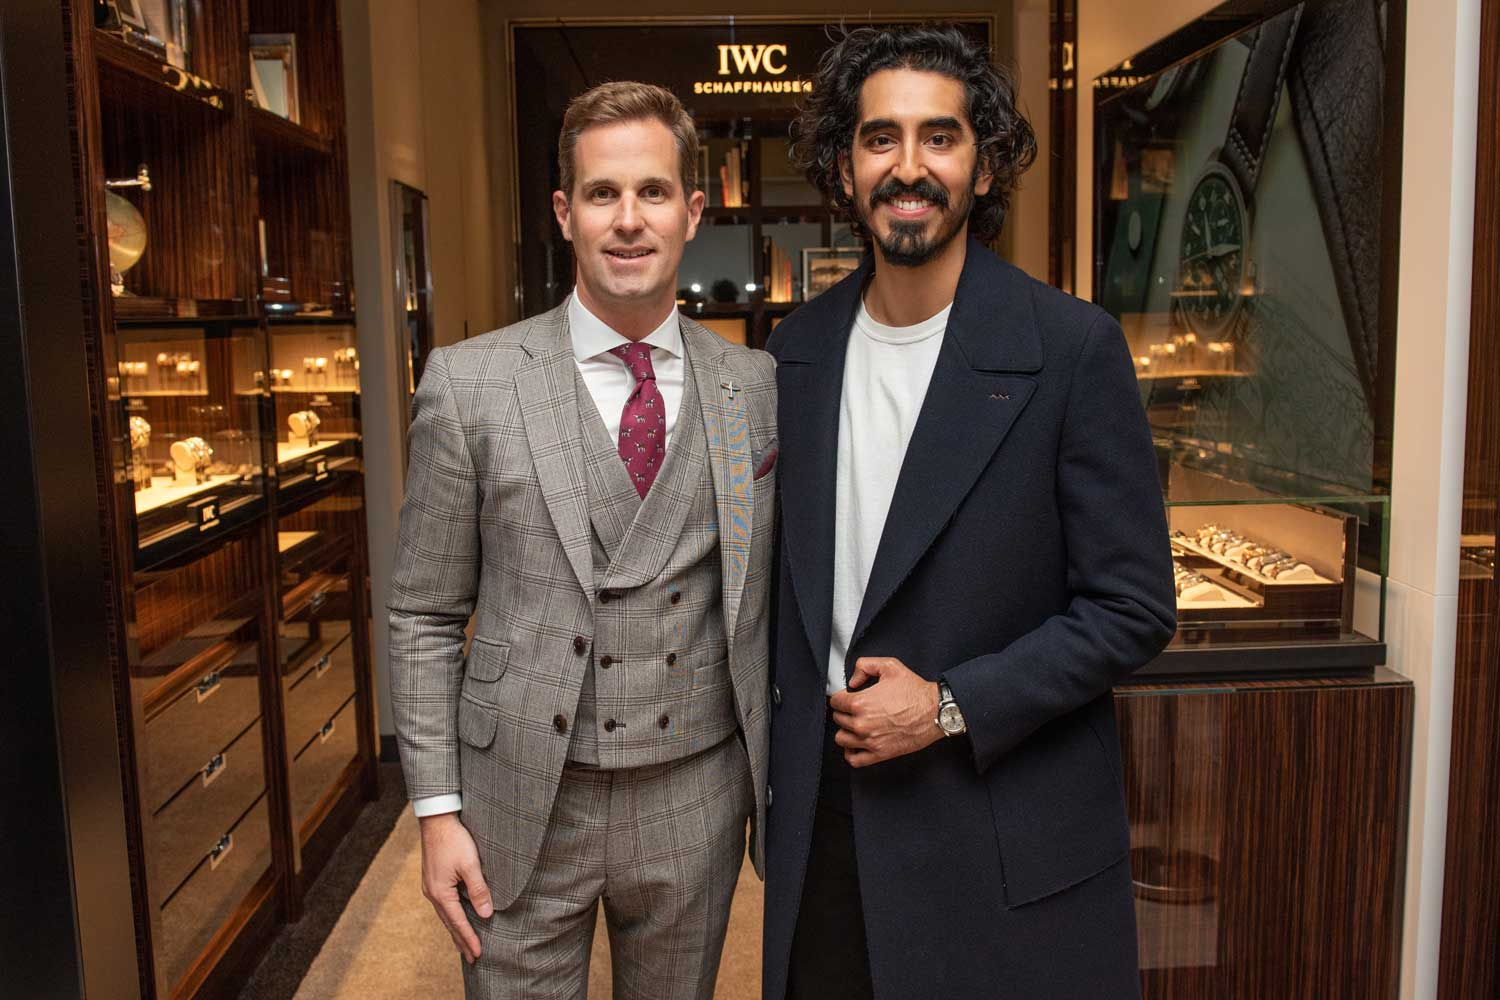 Patel with IWC CEO Christoph Grainger-Herr at the IWC boutique in London.